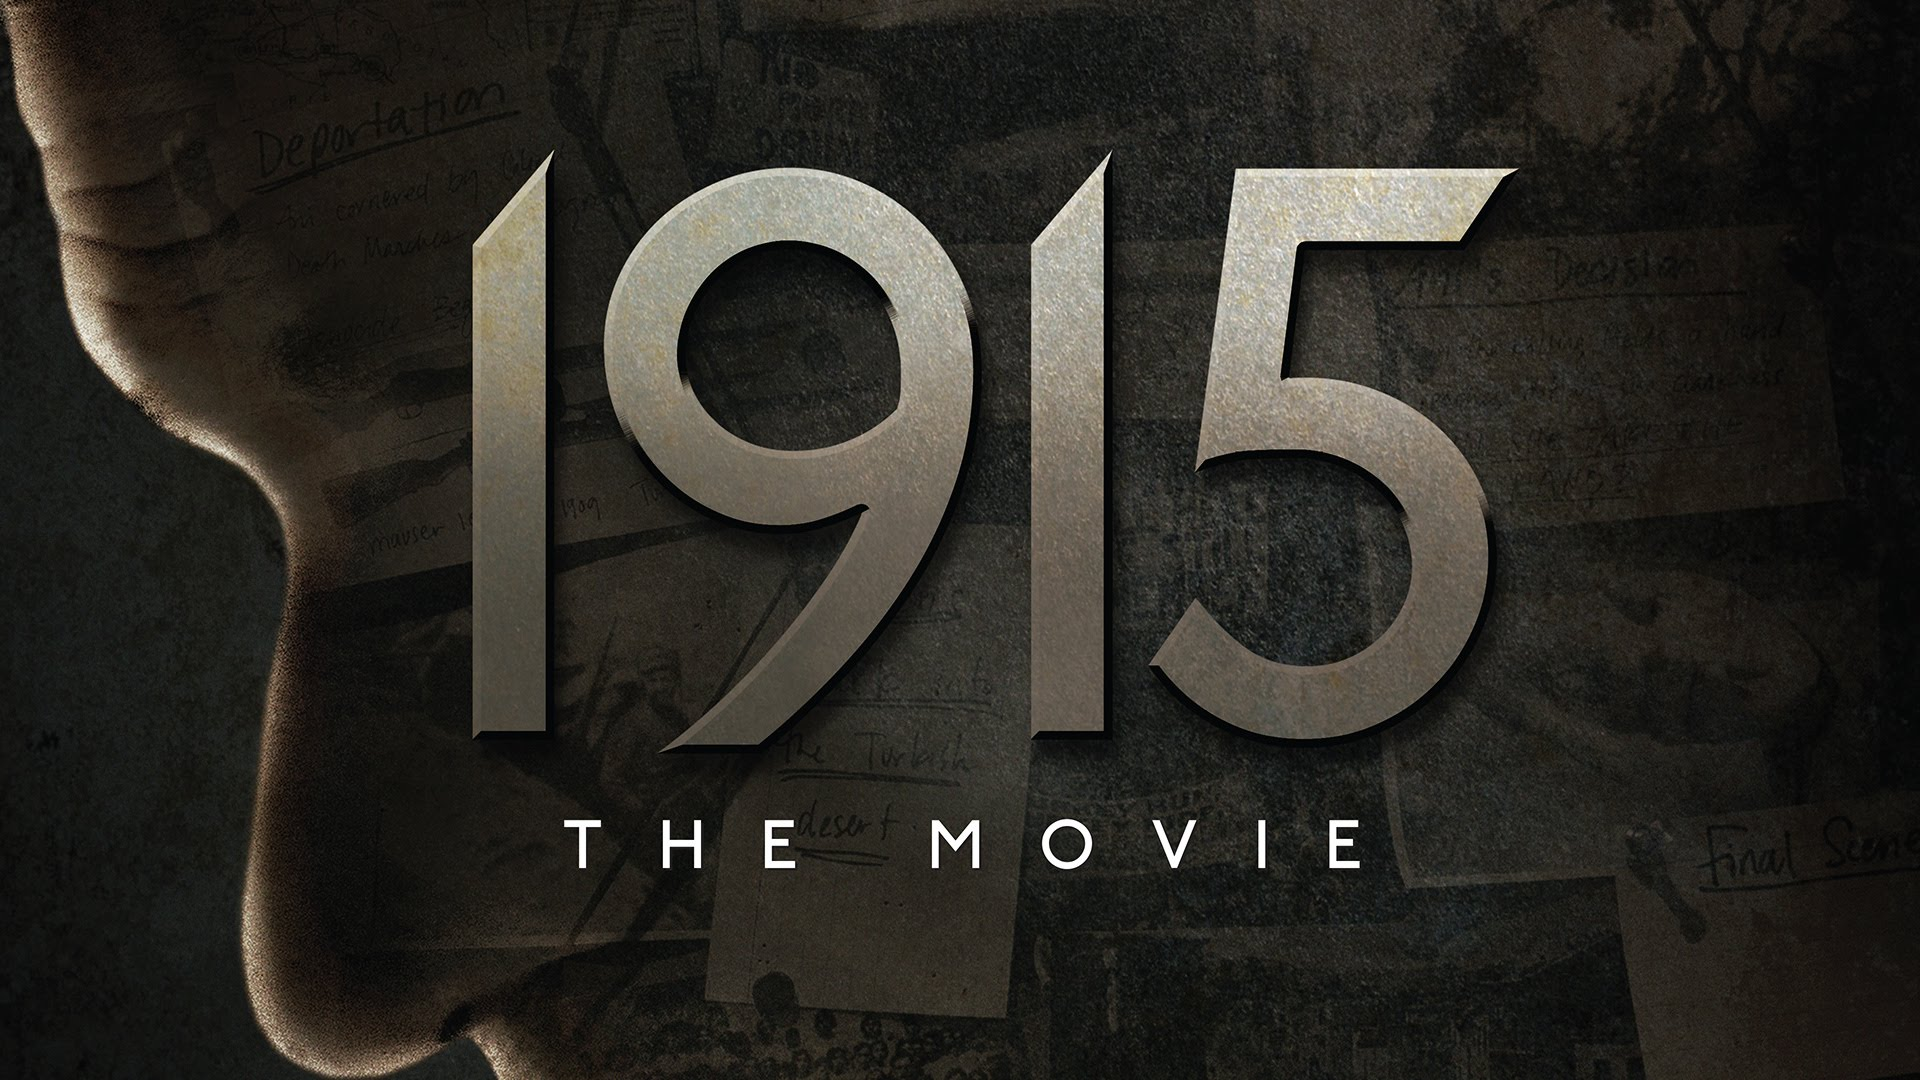 1915 The Movie - Official Trailer (2015)